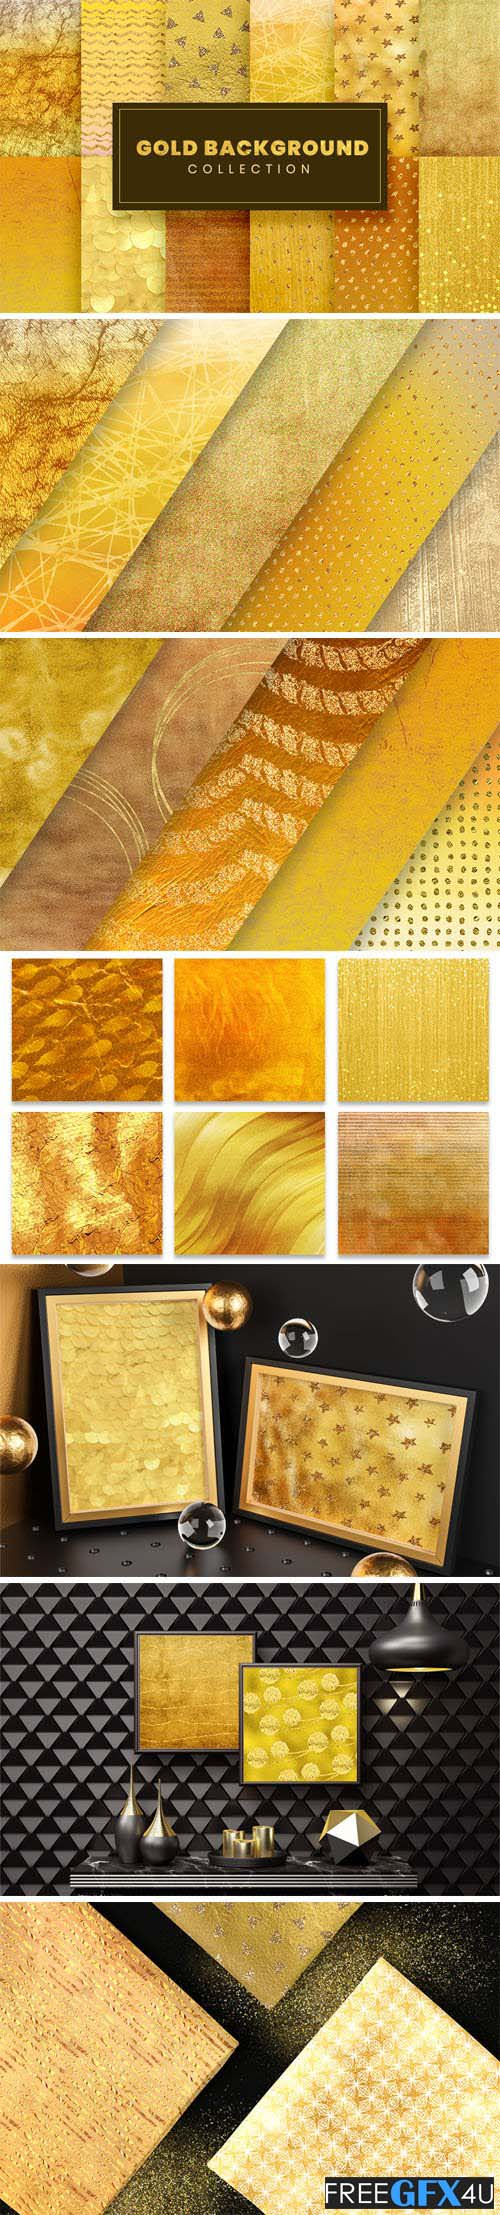 25 Gold Backgrounds Collection Pack